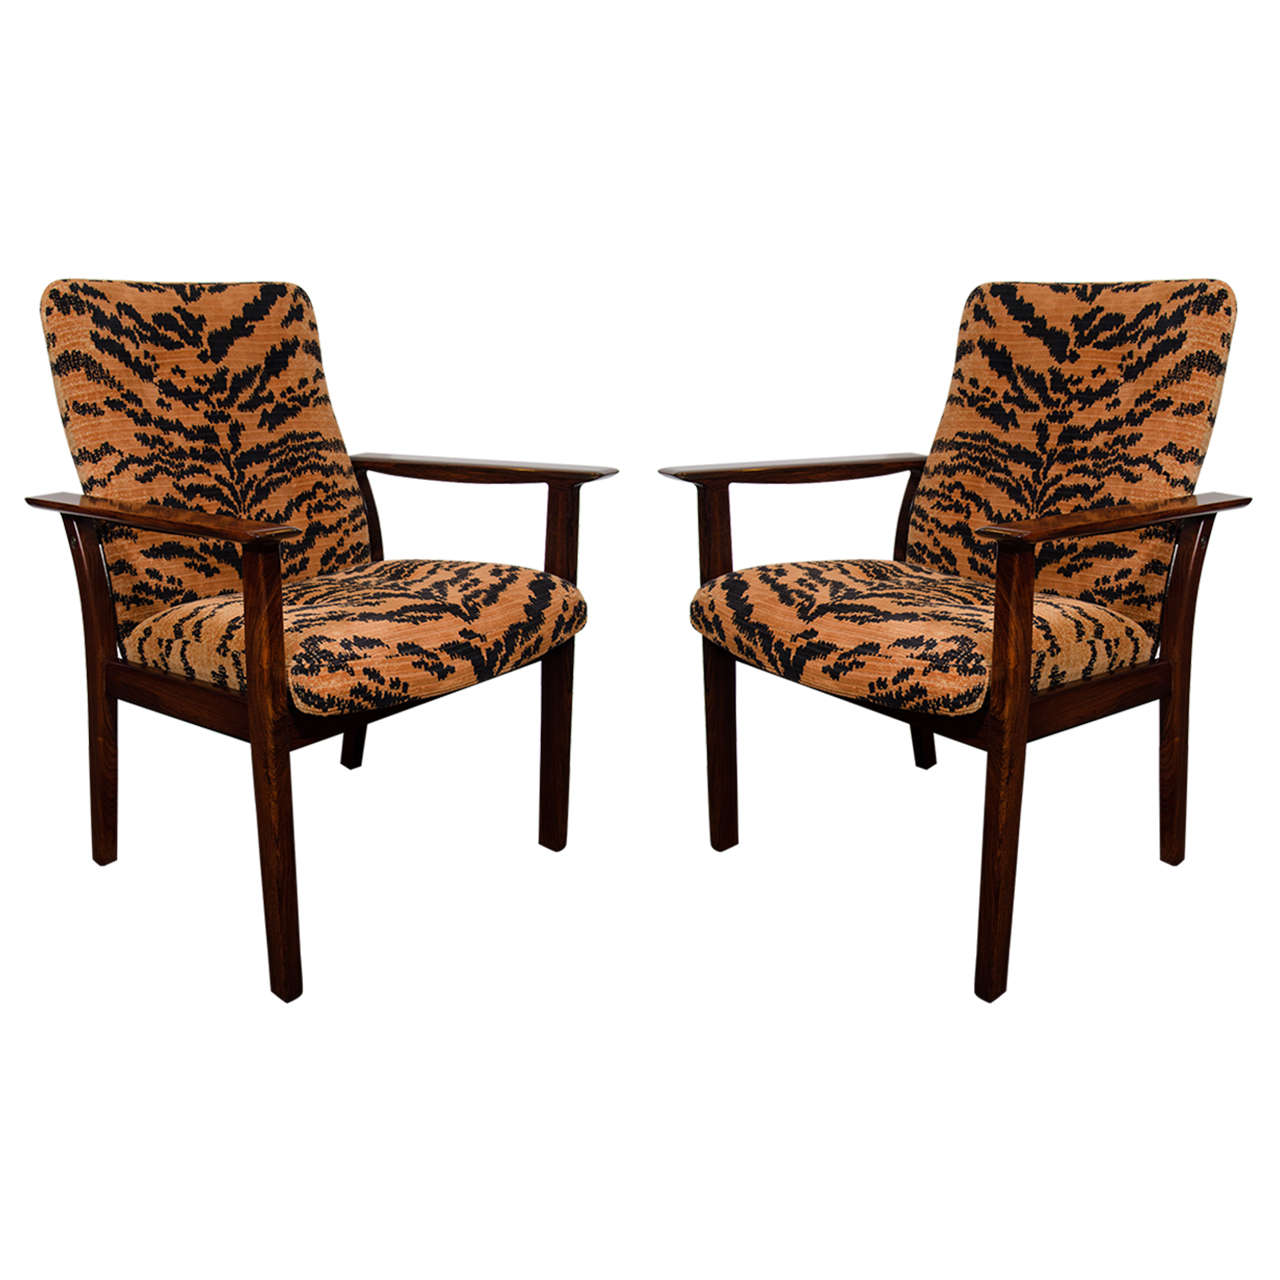 Midcentury Pair of Rosewood Chairs in Tiger Velvet Upholstery